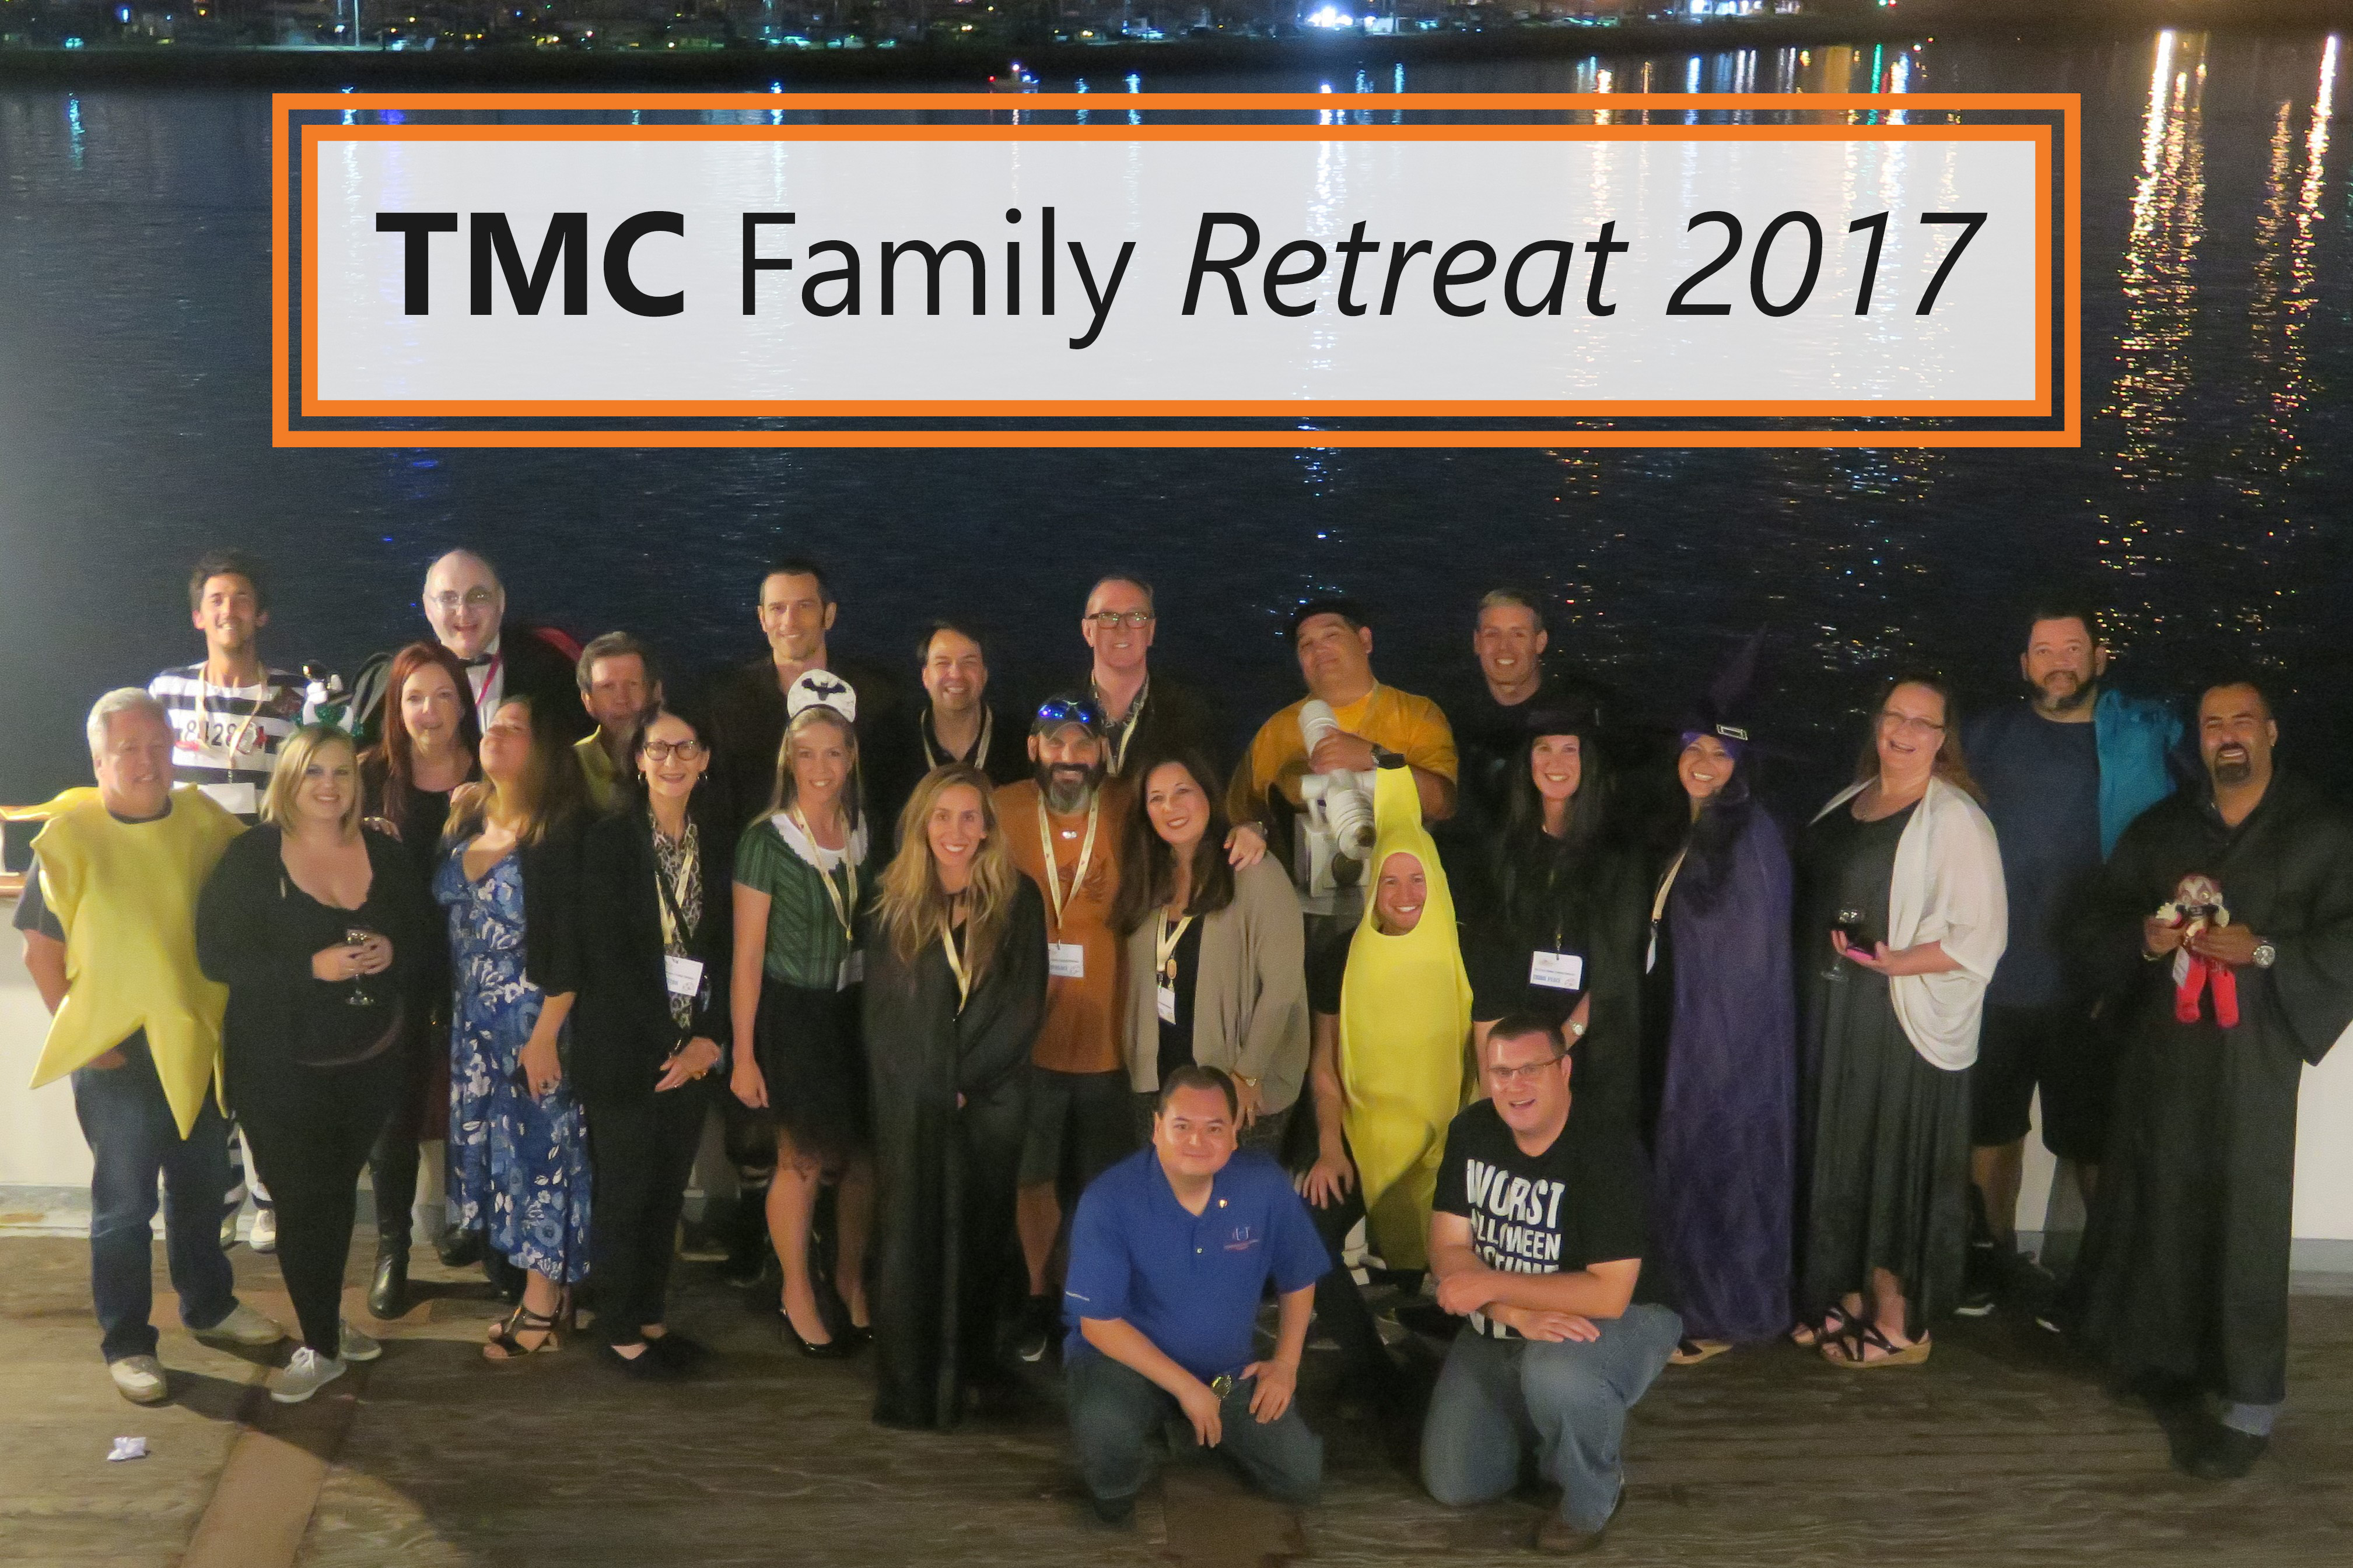 TMC Family Retreat 2017